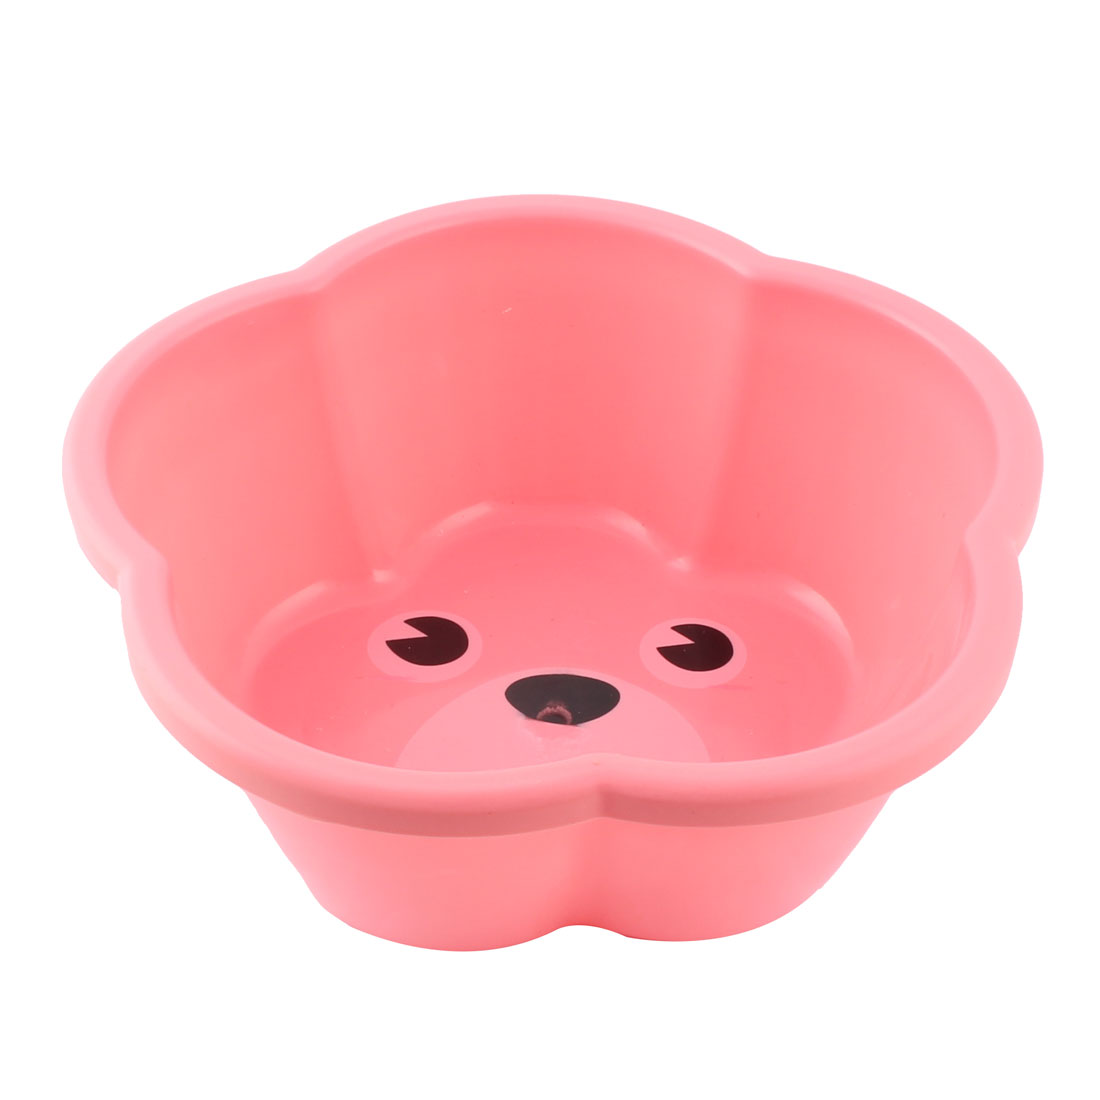 Family Kitchen Petals Shape Anti Slip Design Washing Bowl Wash Basin Pink